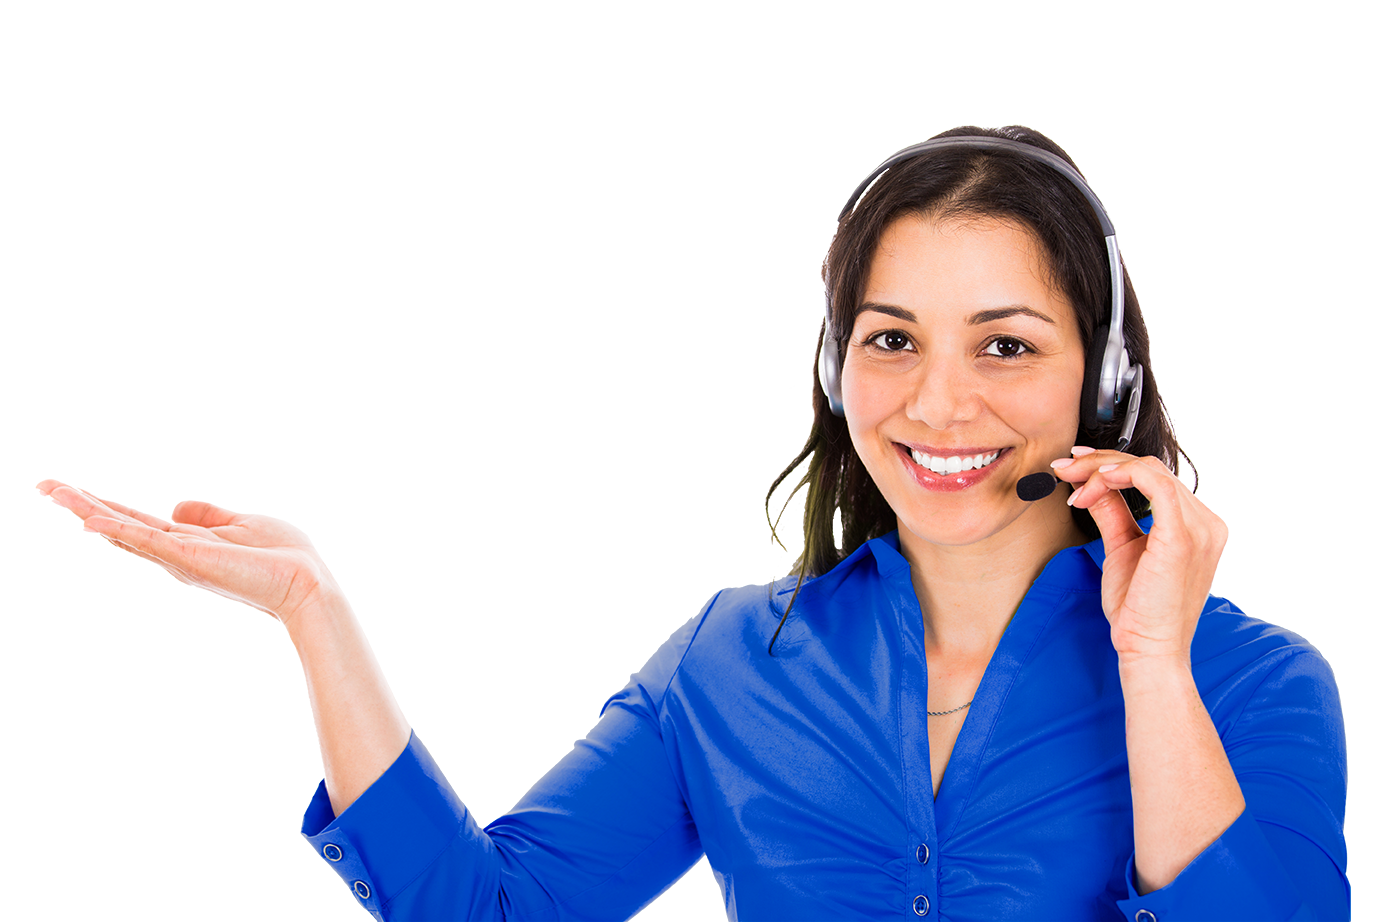 Call Centre Images Free Download PNG HD PNG Image